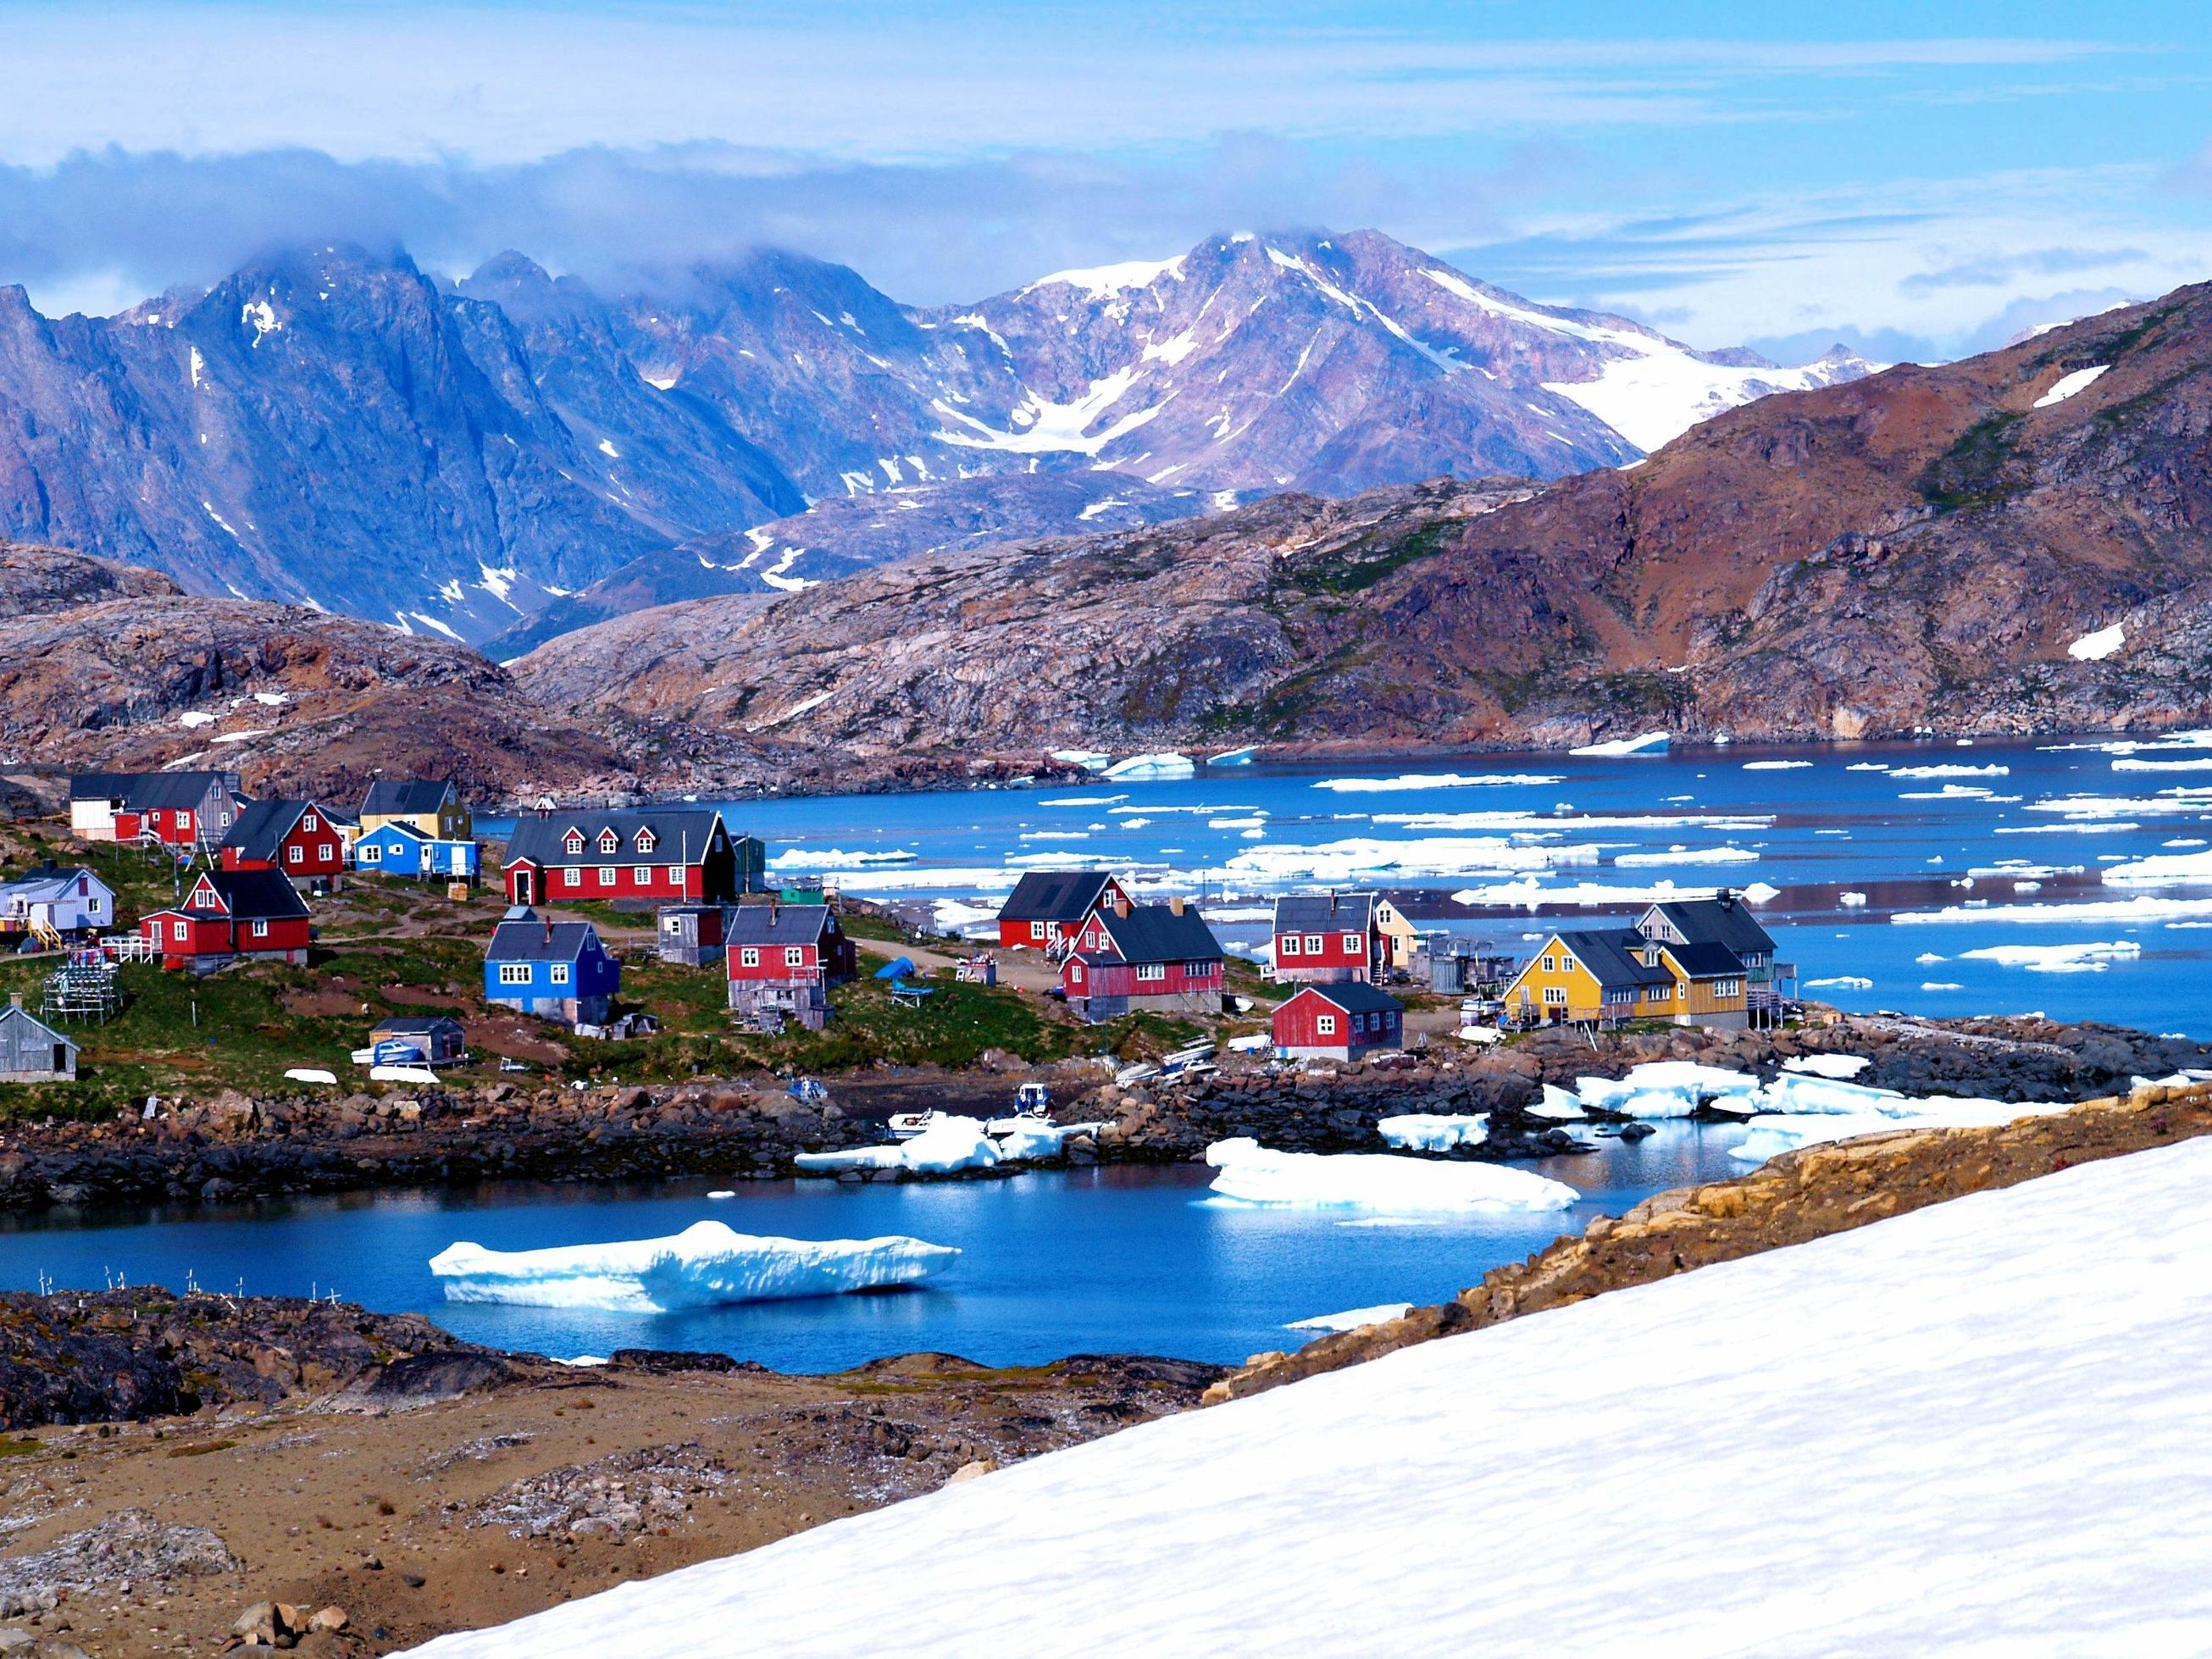 Download Greenland Wallpapers 2611x1958 40 Greenland Wallpaper